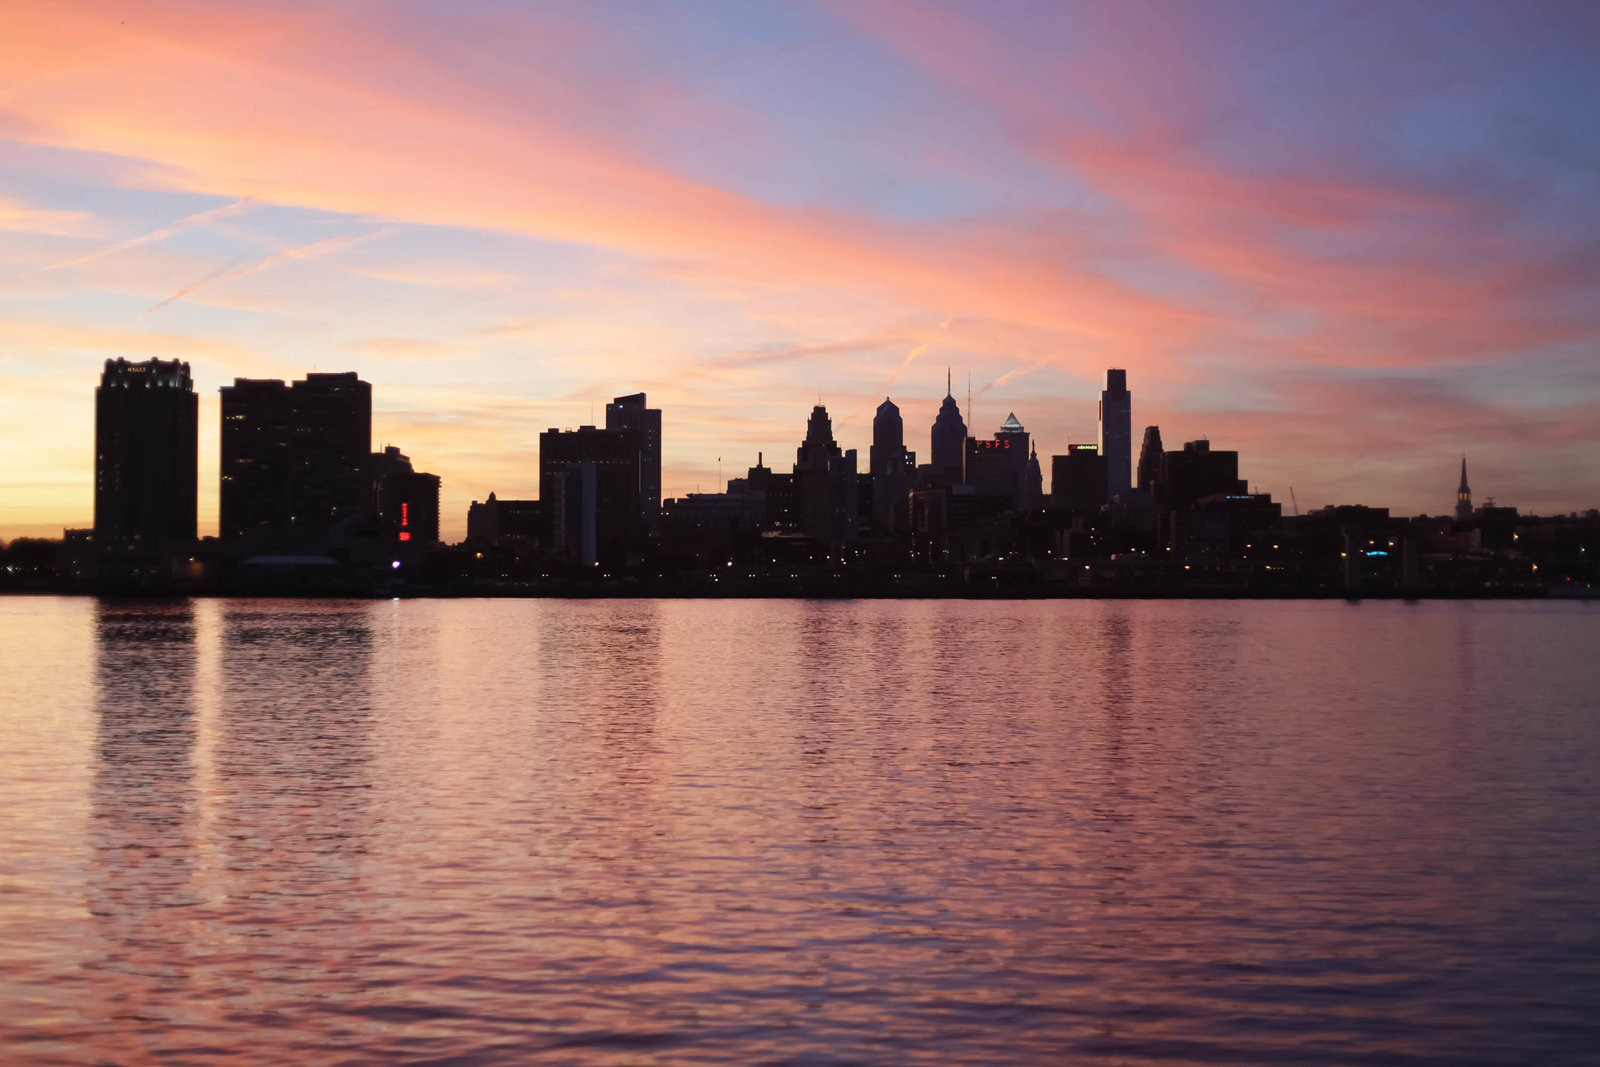 vibrant-sunset-sky-line-city-philadephia-kate-timbers-photography-1551